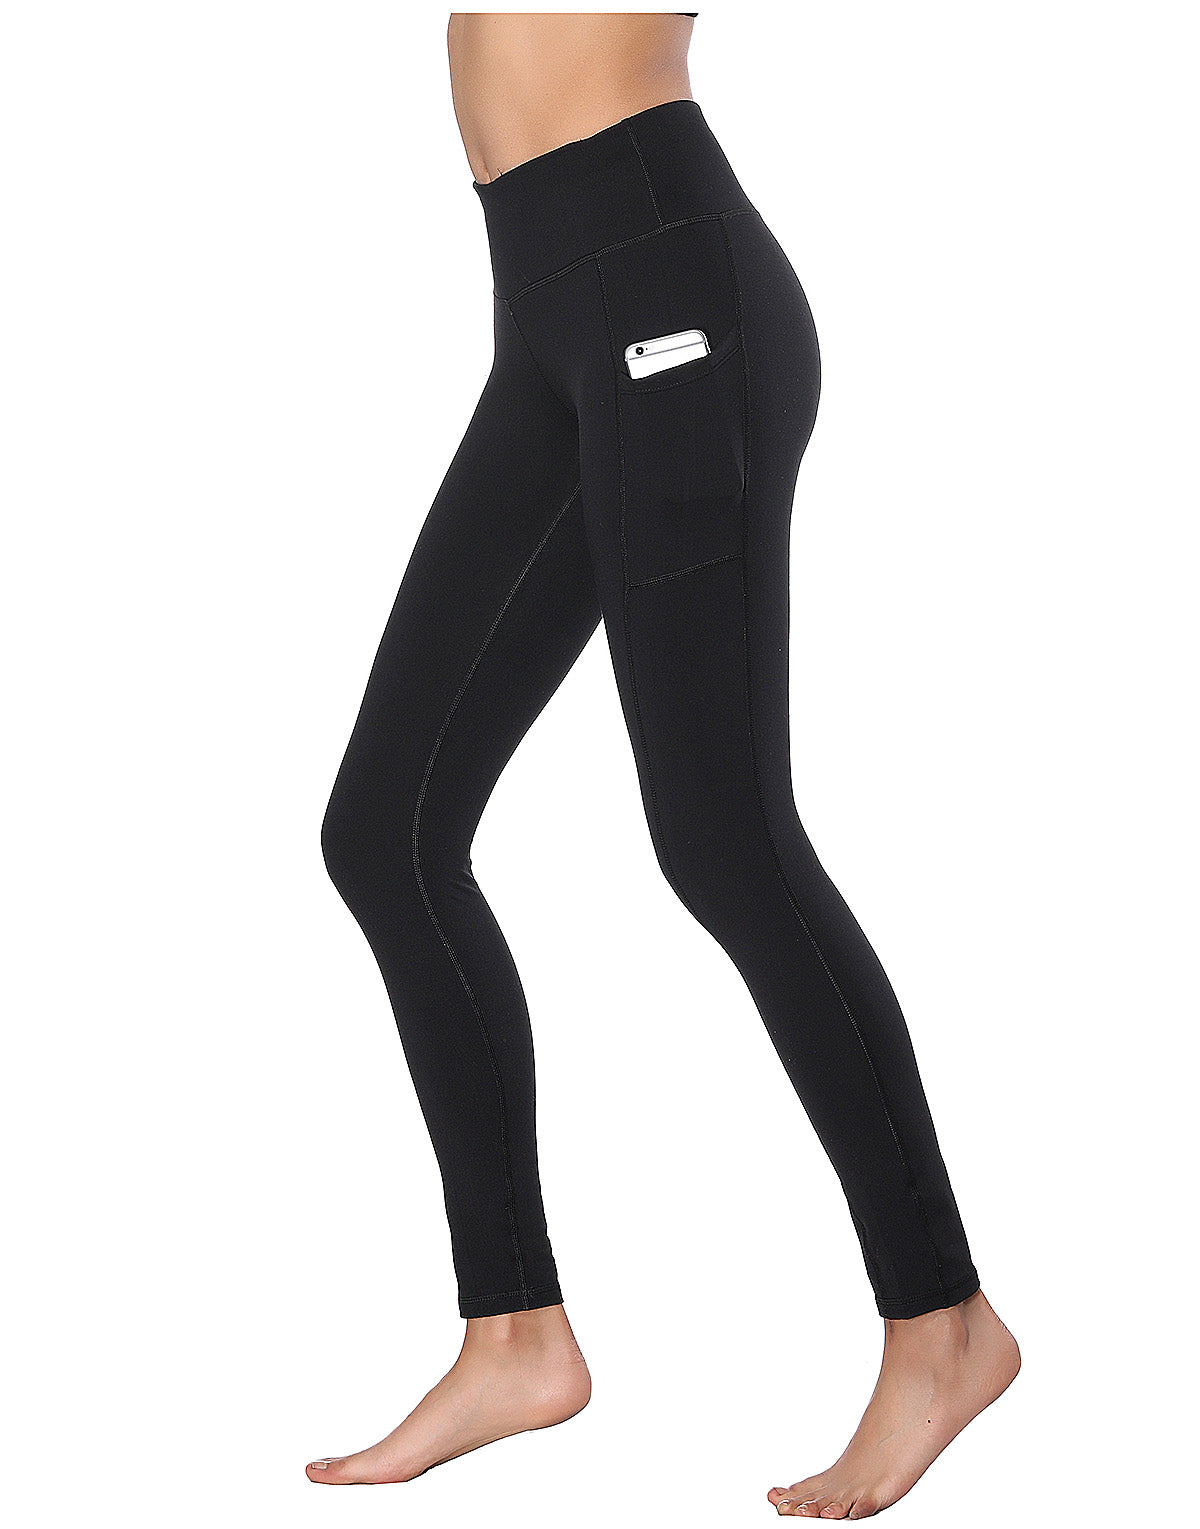 336faf761e157 Women's High Waist Yoga Pants with Side & Inner Pockets Tummy Control Workout  Running 4 Way